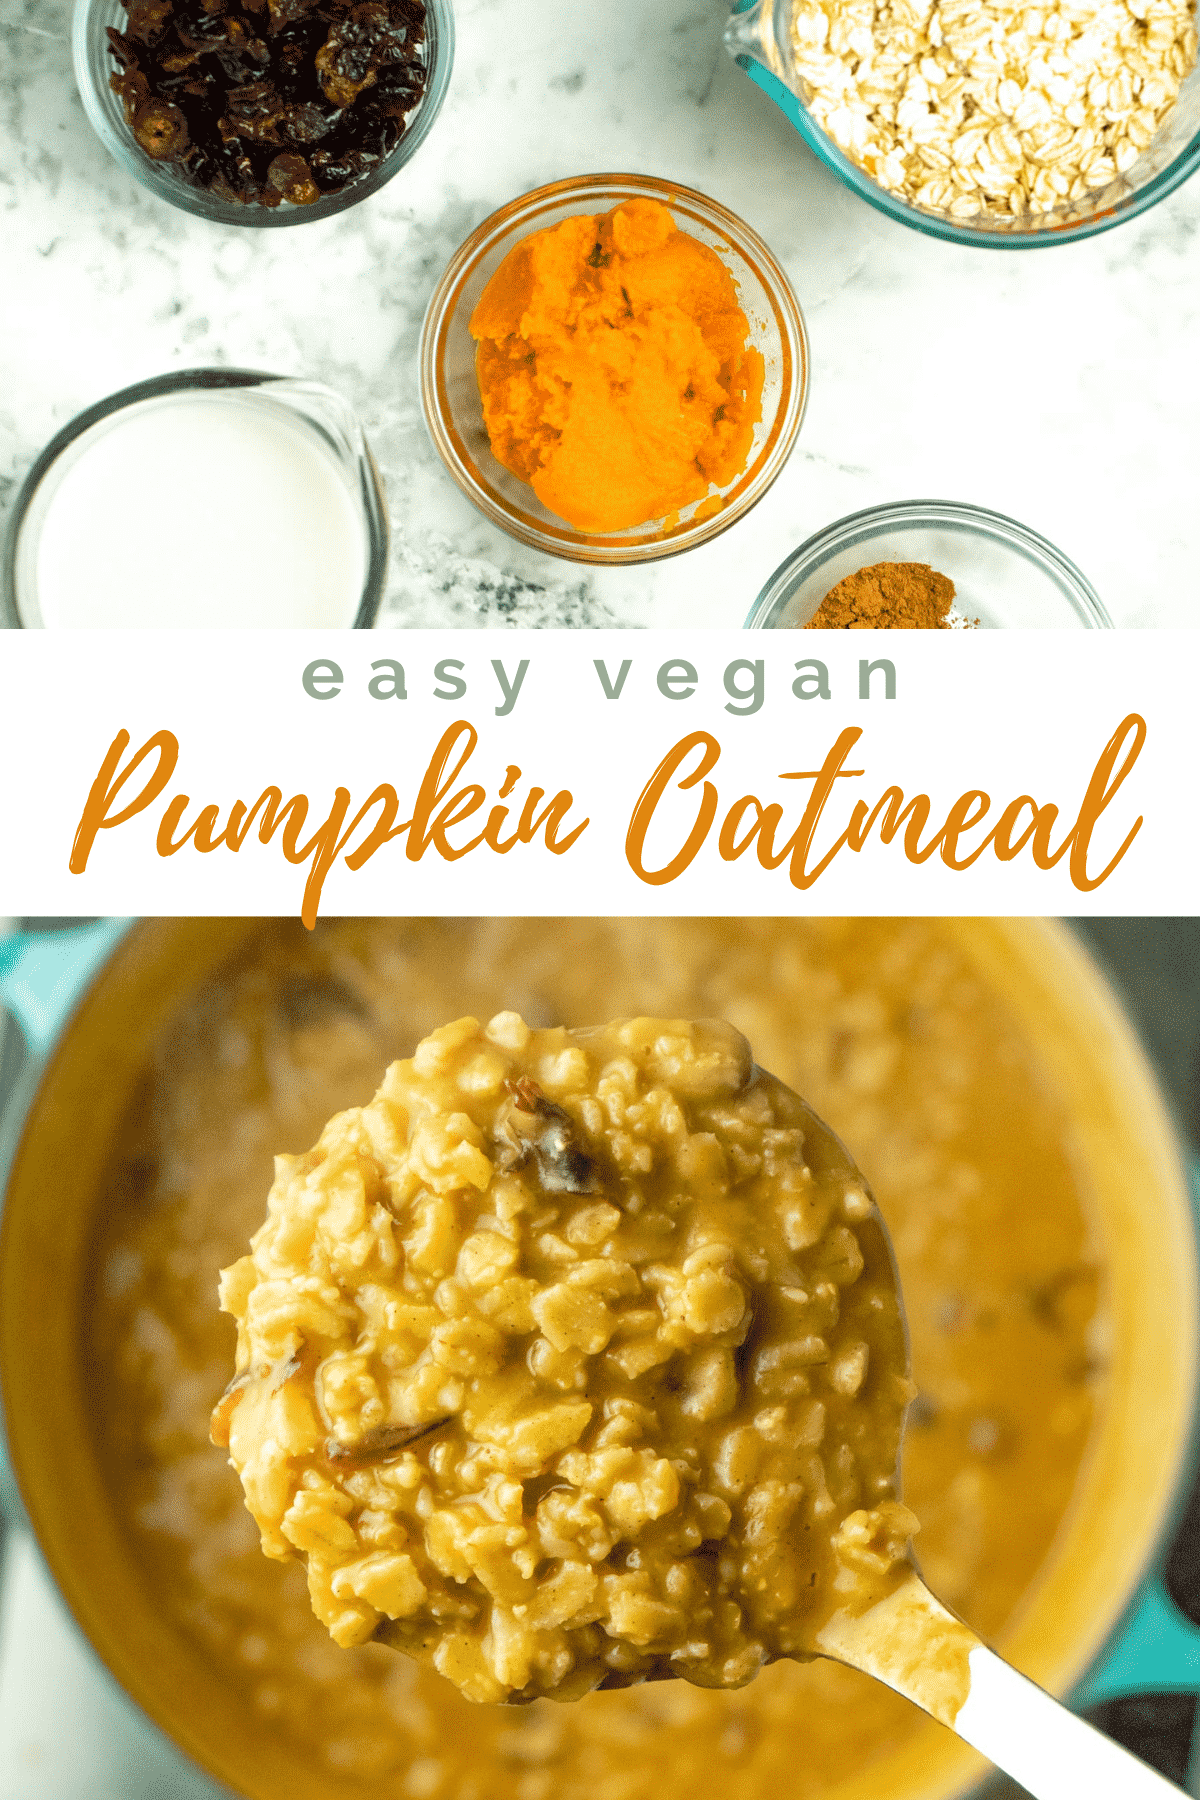 image collage of pumpkin oatmeal and the ingredients